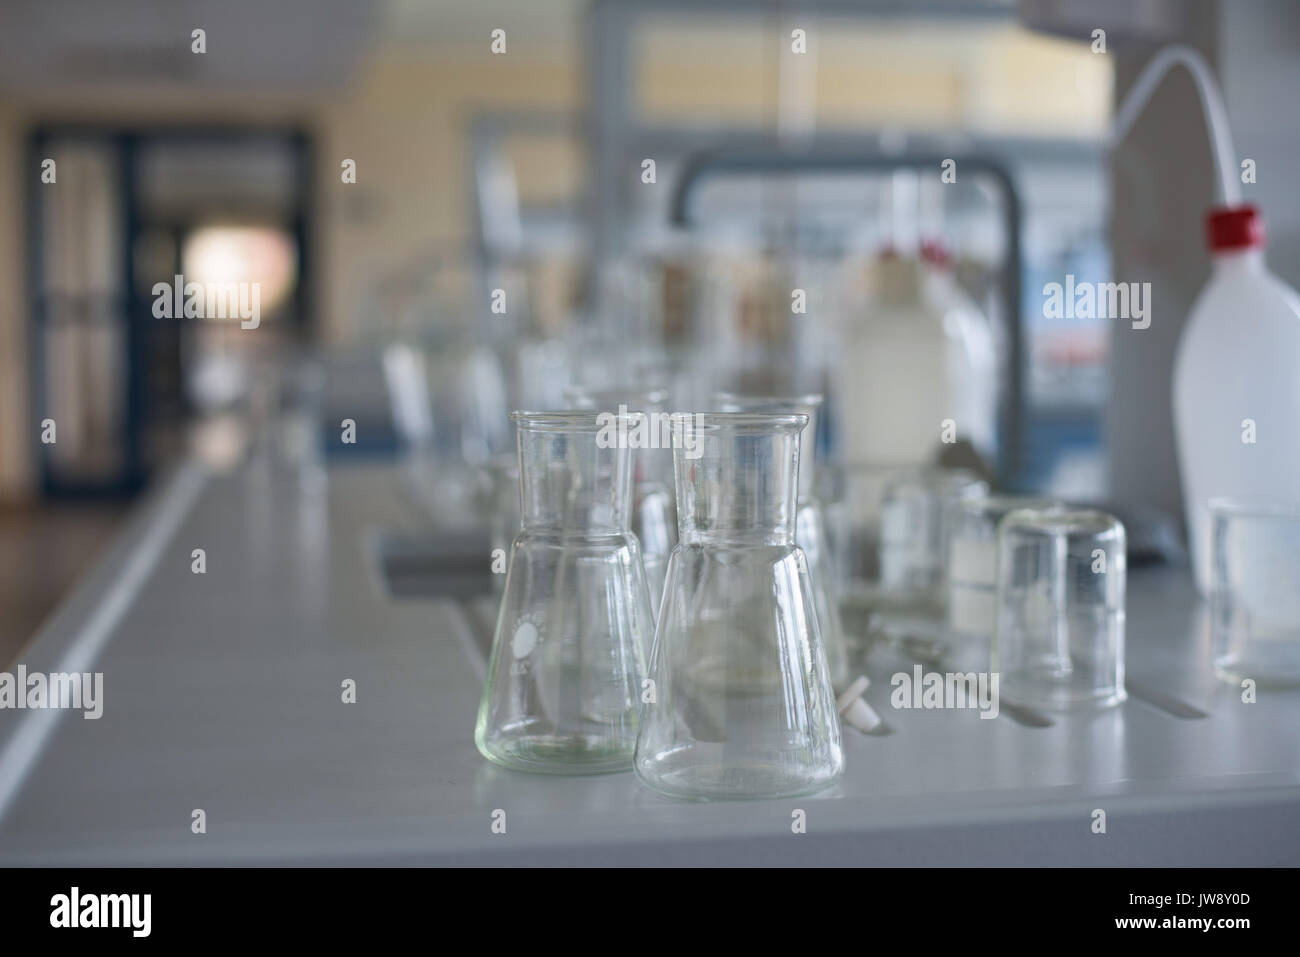 Close up of beakers on desk in lab - Stock Image